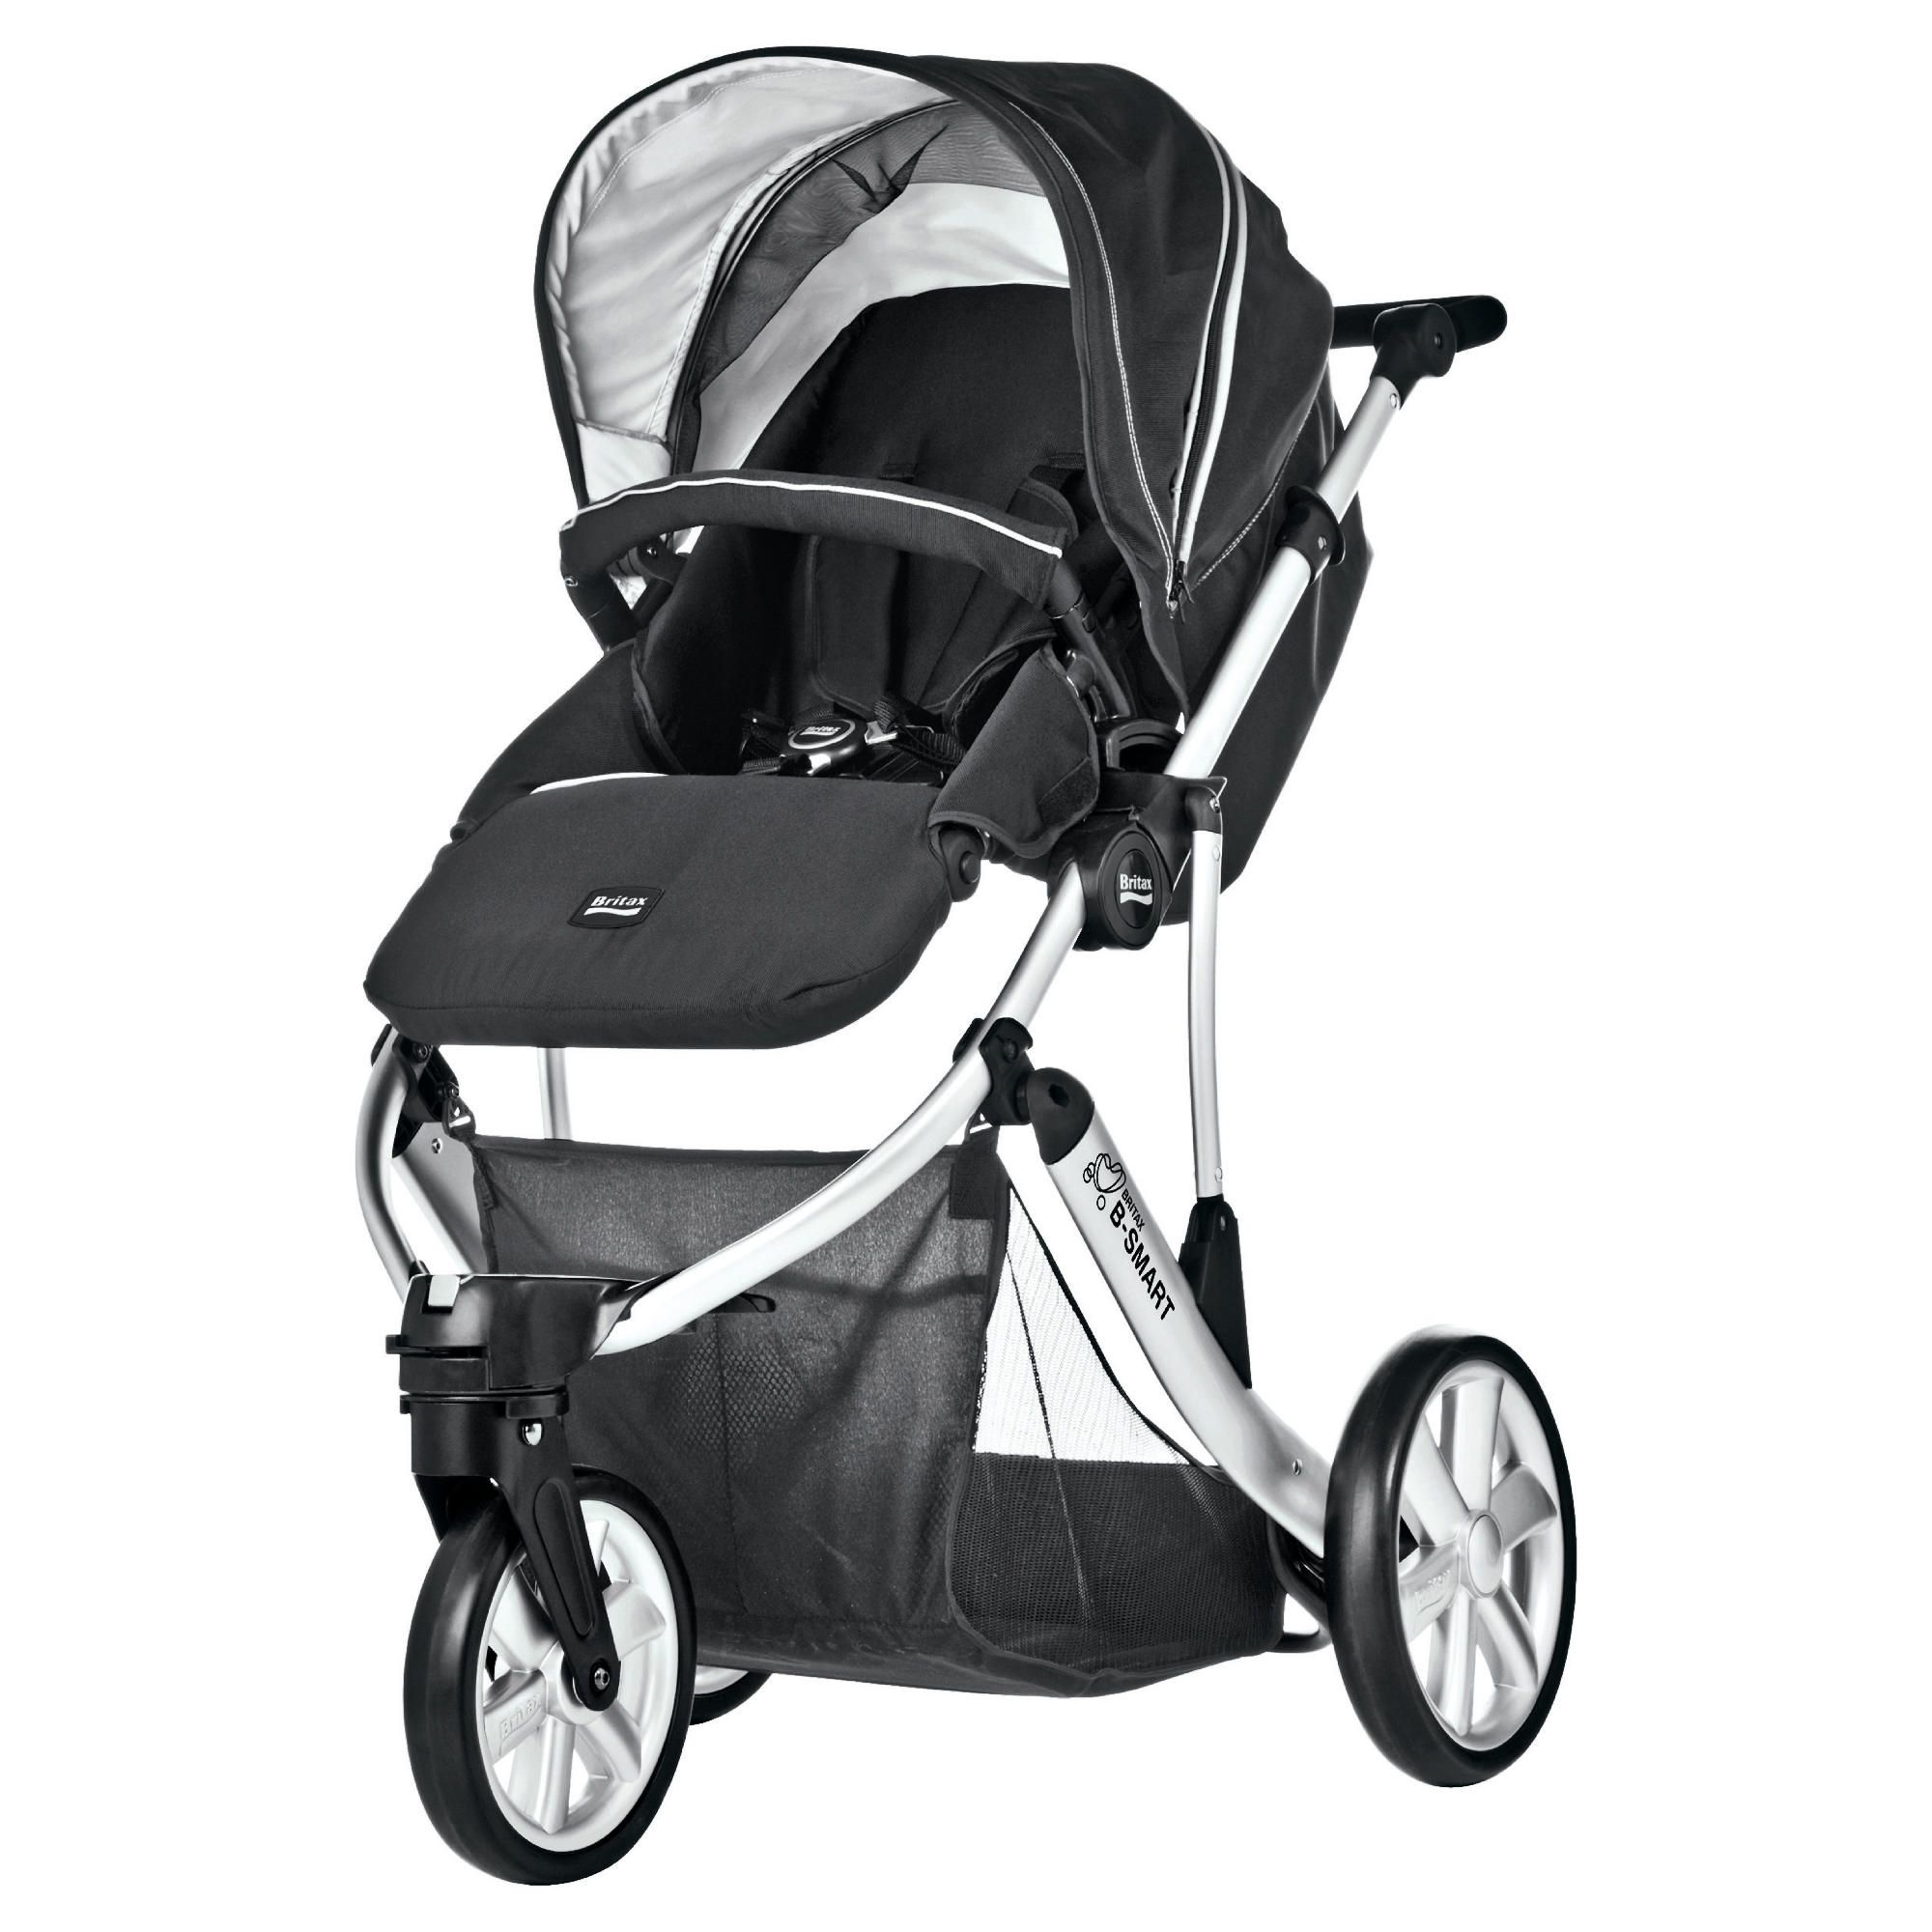 Britax B Smart 3 Wheeler Neon Pushchair, Black at Tesco Direct